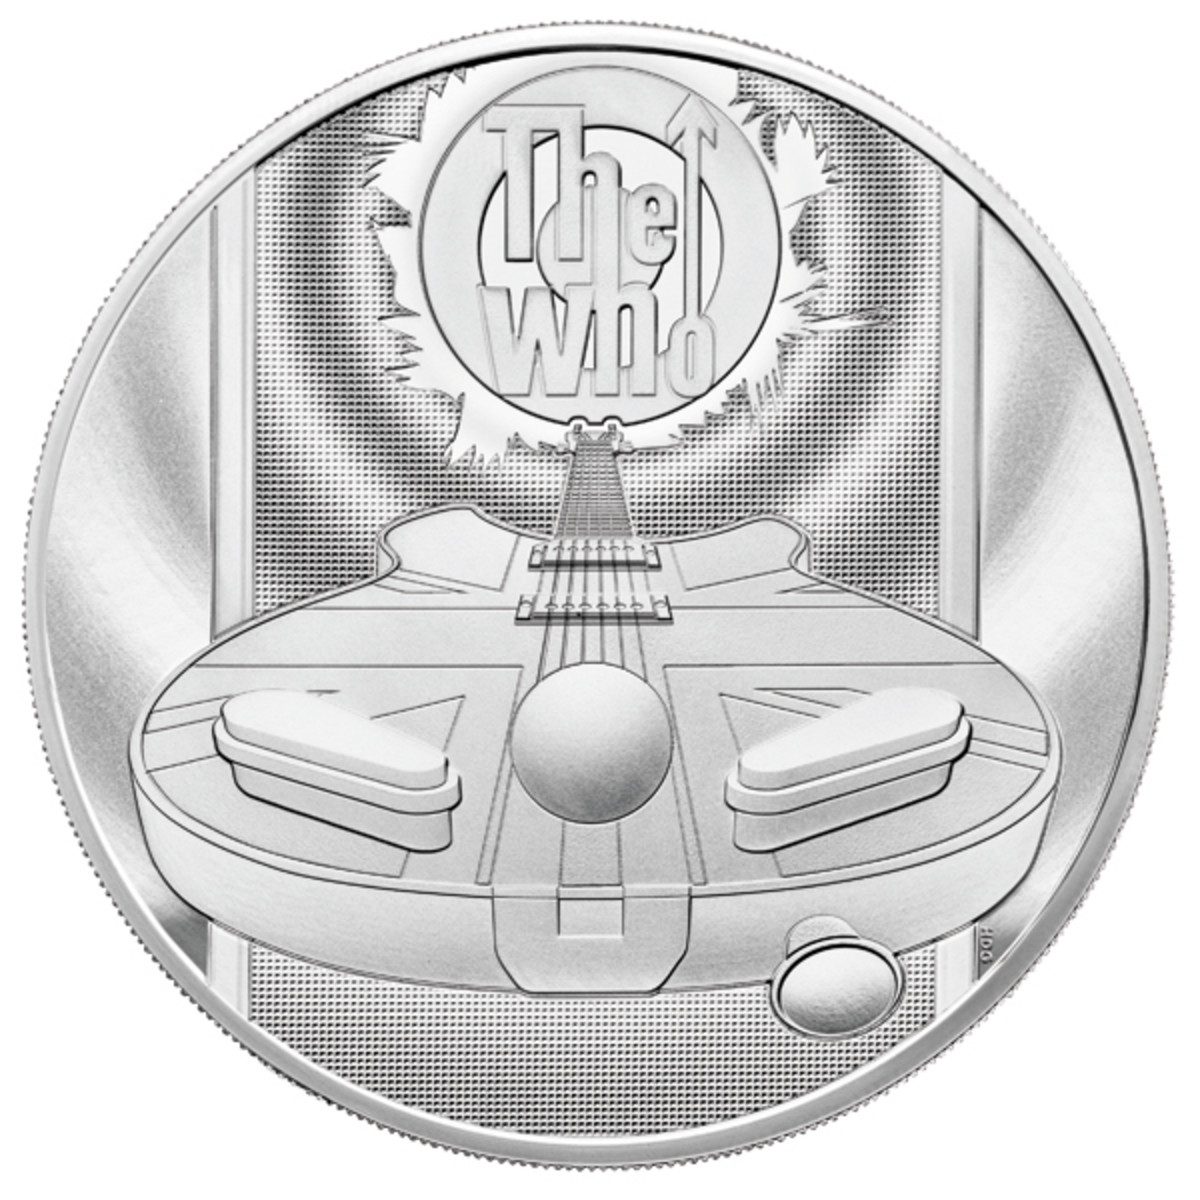 Larger proof pieces in the collection feature rings of reverberating sound waves emanating from the speaker at the highly recognizable bull's-eye The Who logo. You can see this feature on the five ounce silver, two ounce silver or gold and the gold kilo versions.